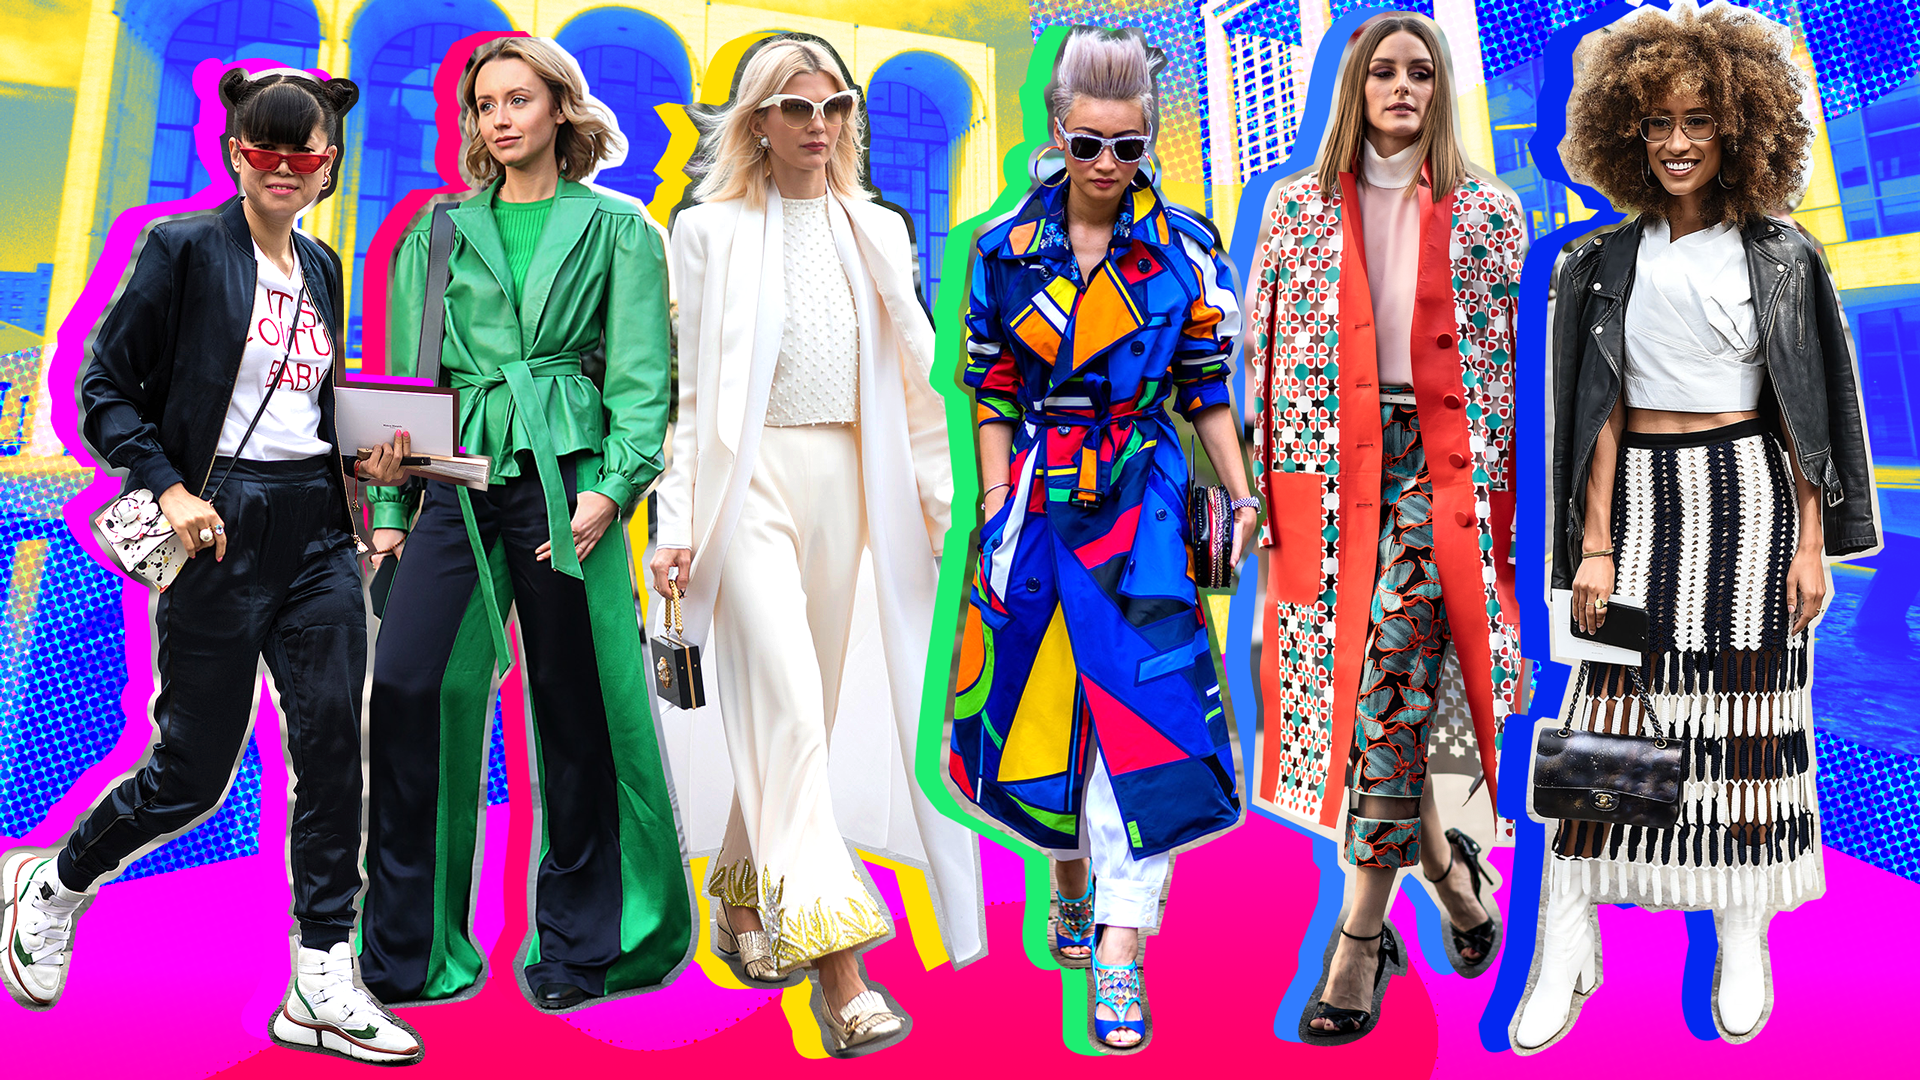 The Professional Stylist's Guide to Dressing for Fashion Week